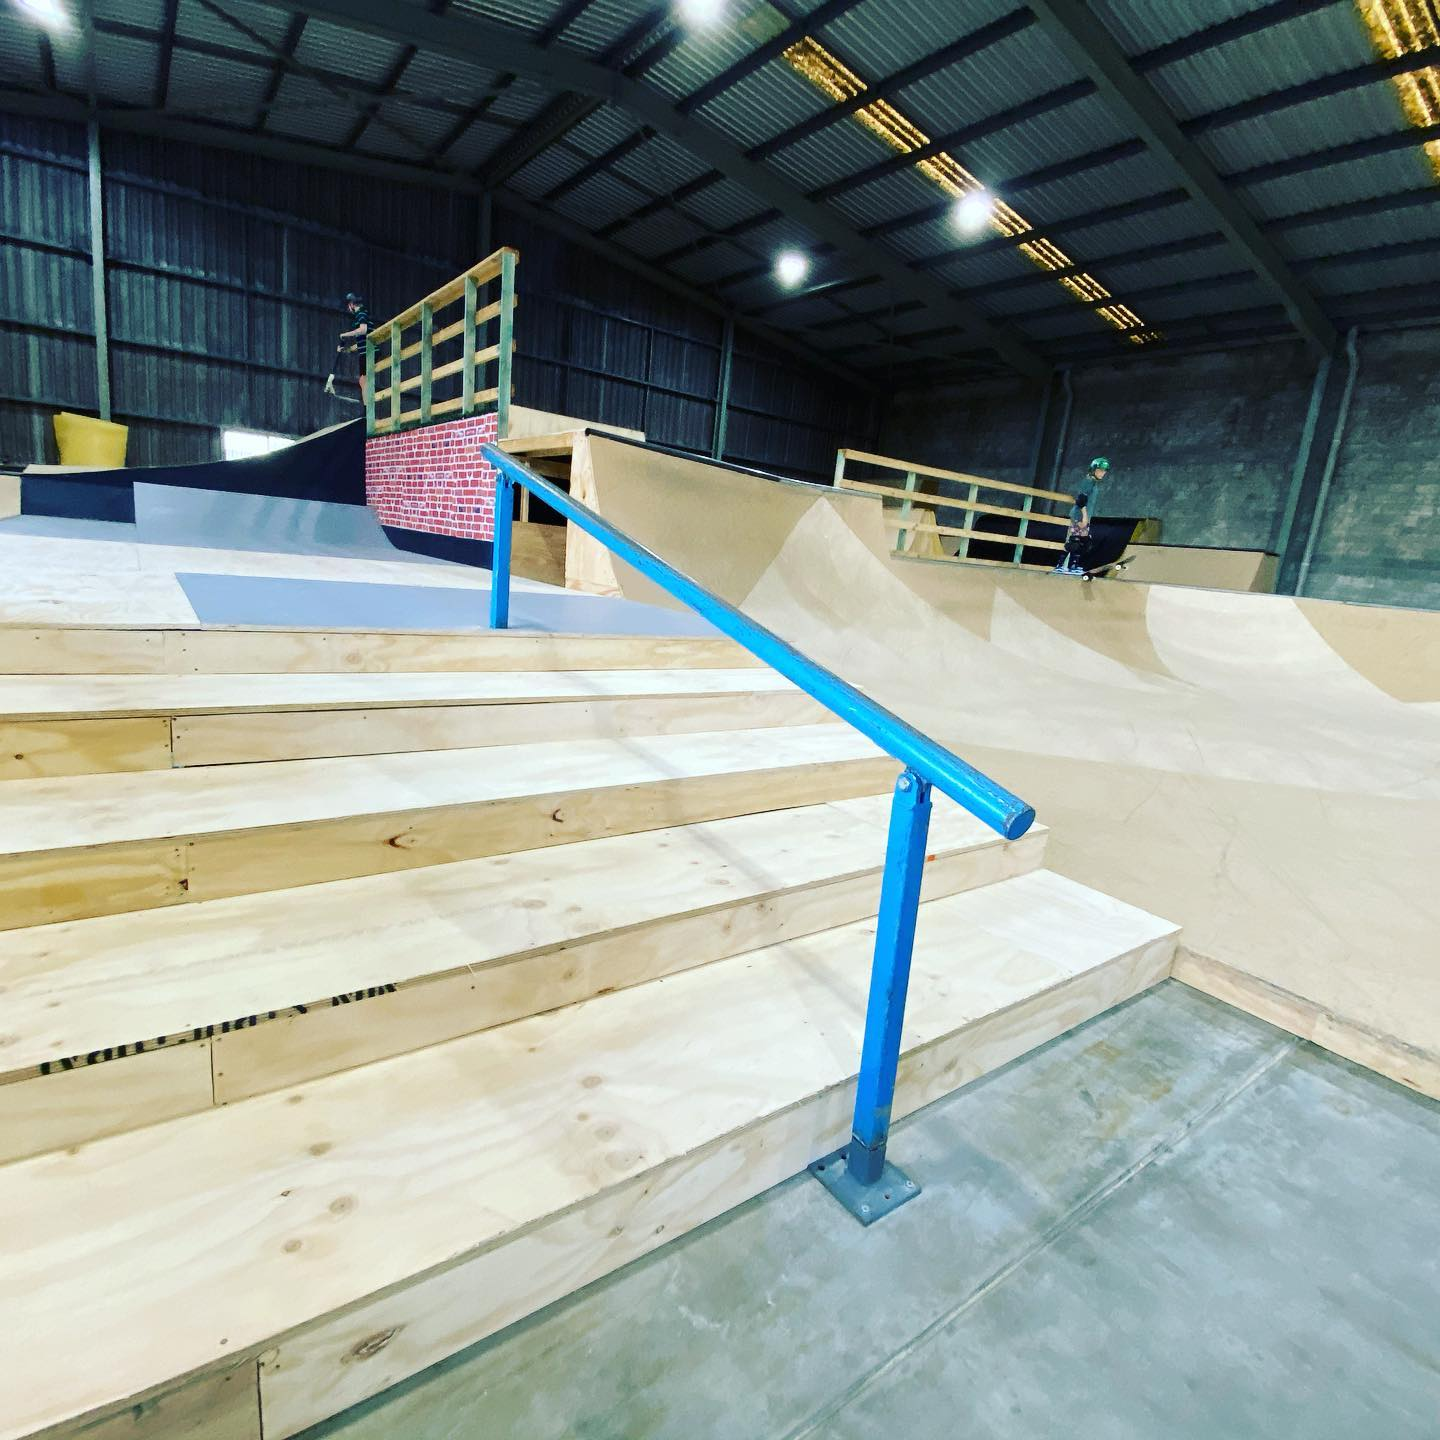 Rail and stairs at the indoor skatepark